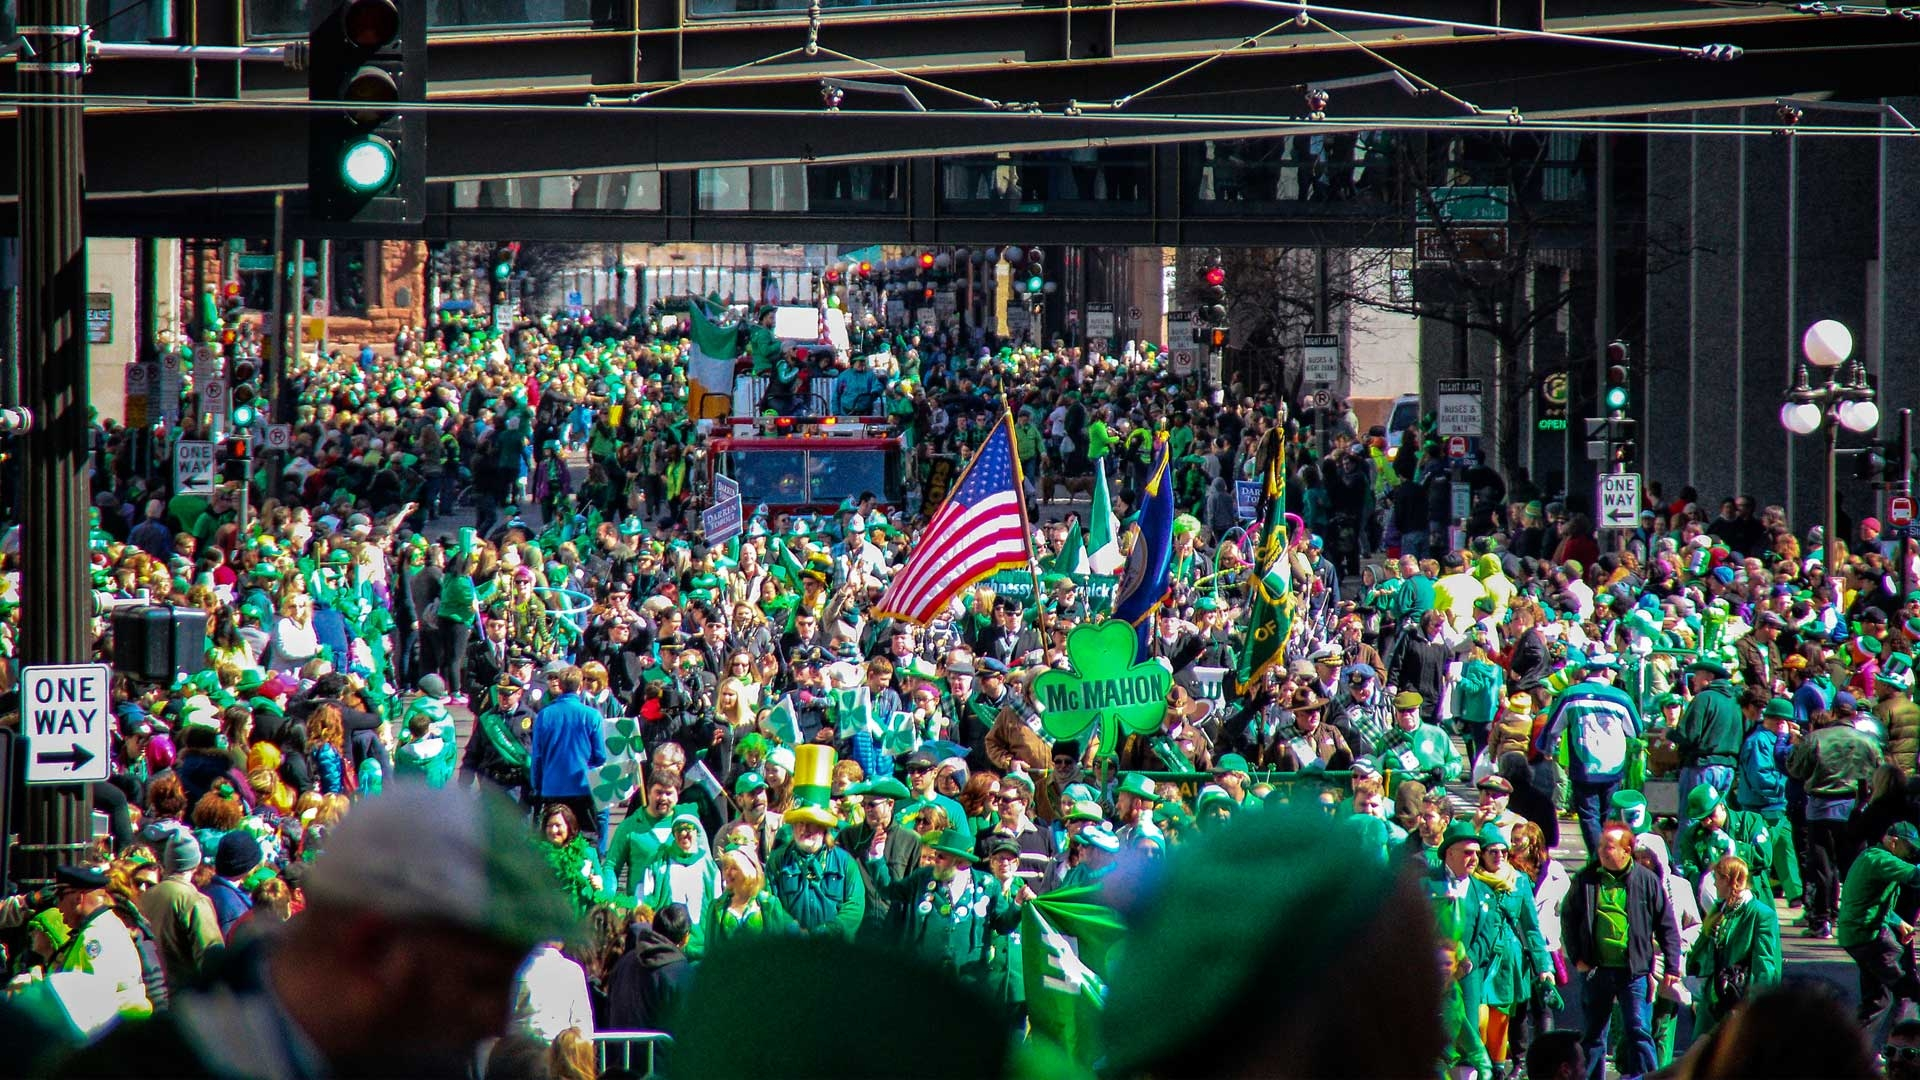 U.S. colors stood out in a field of green at the St. Paul, Minnesota, St. Patrick's Day parade, 2015(?). Photo from VisitStPaul.com.